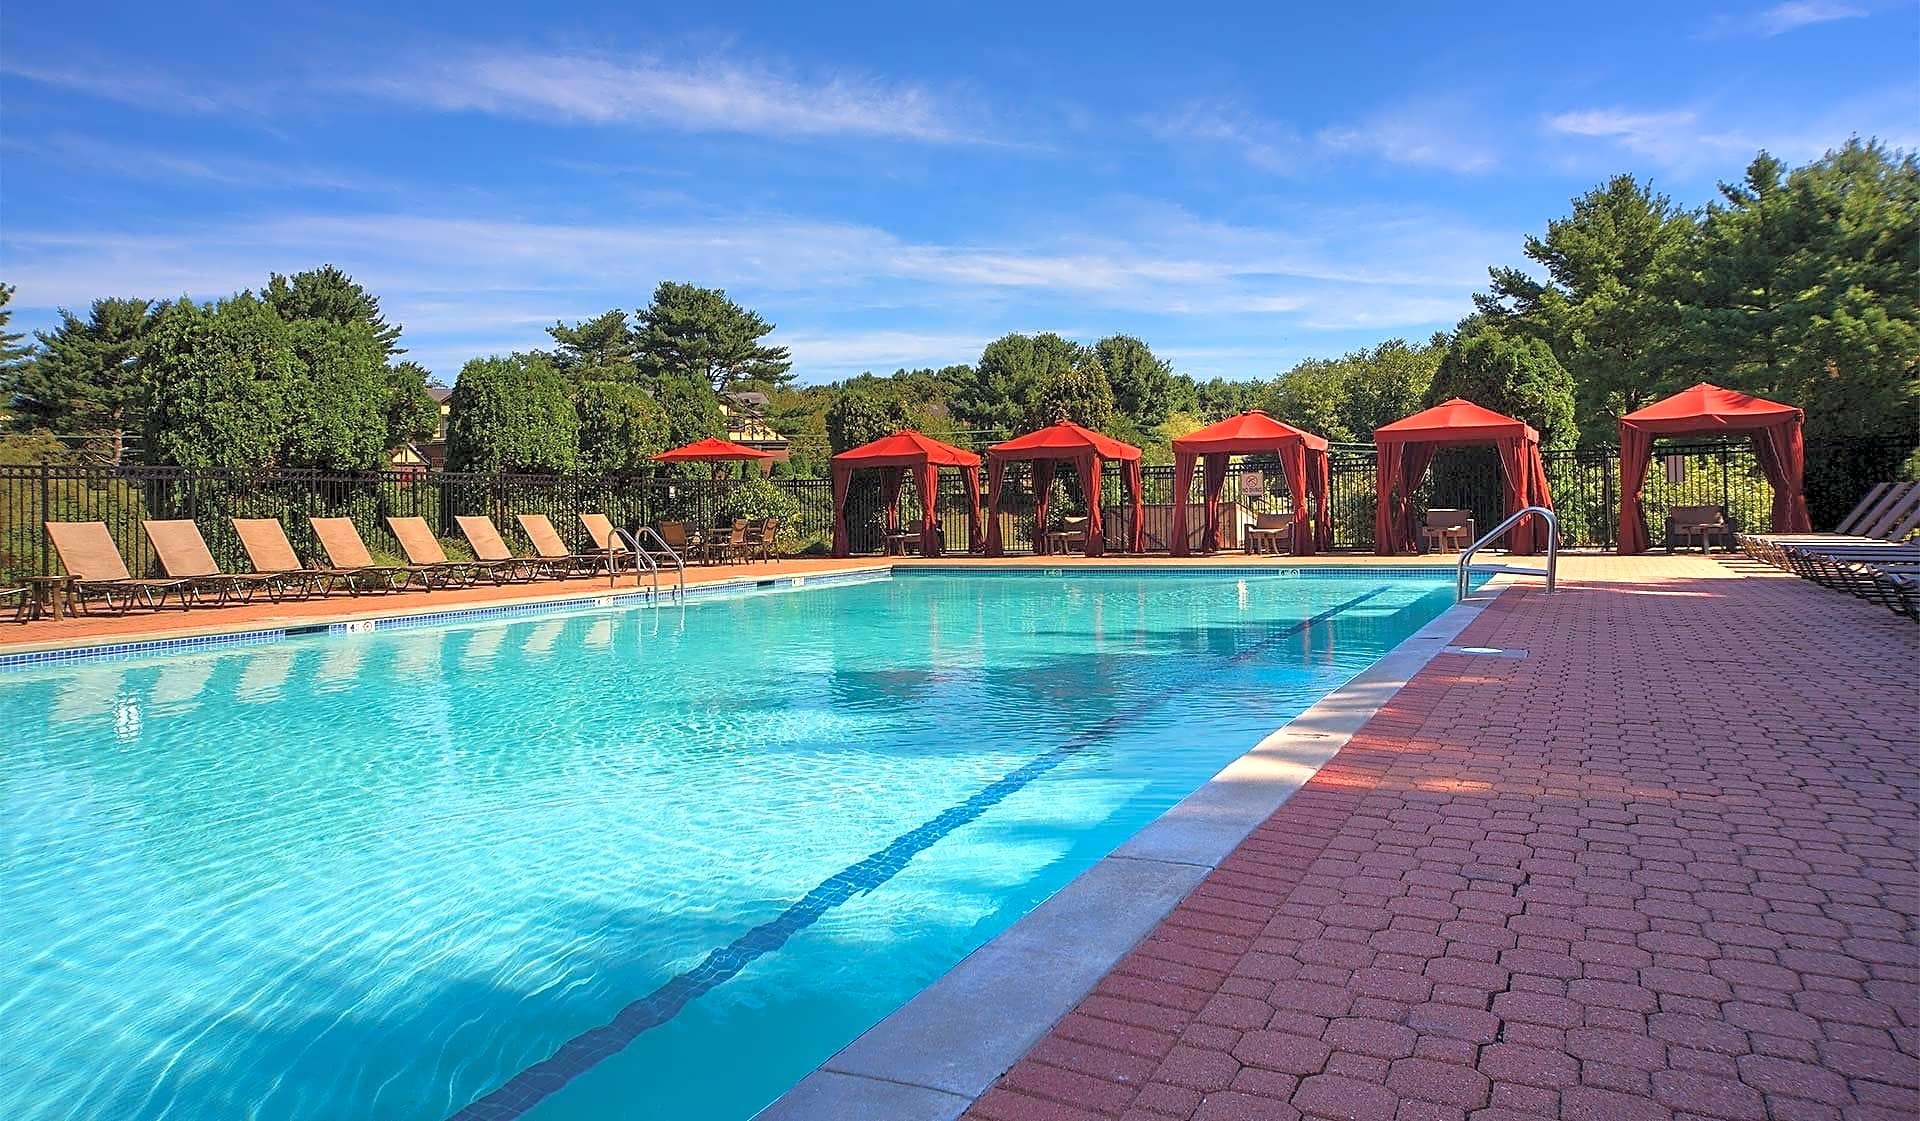 Take a dip in our outdoor swimming pool